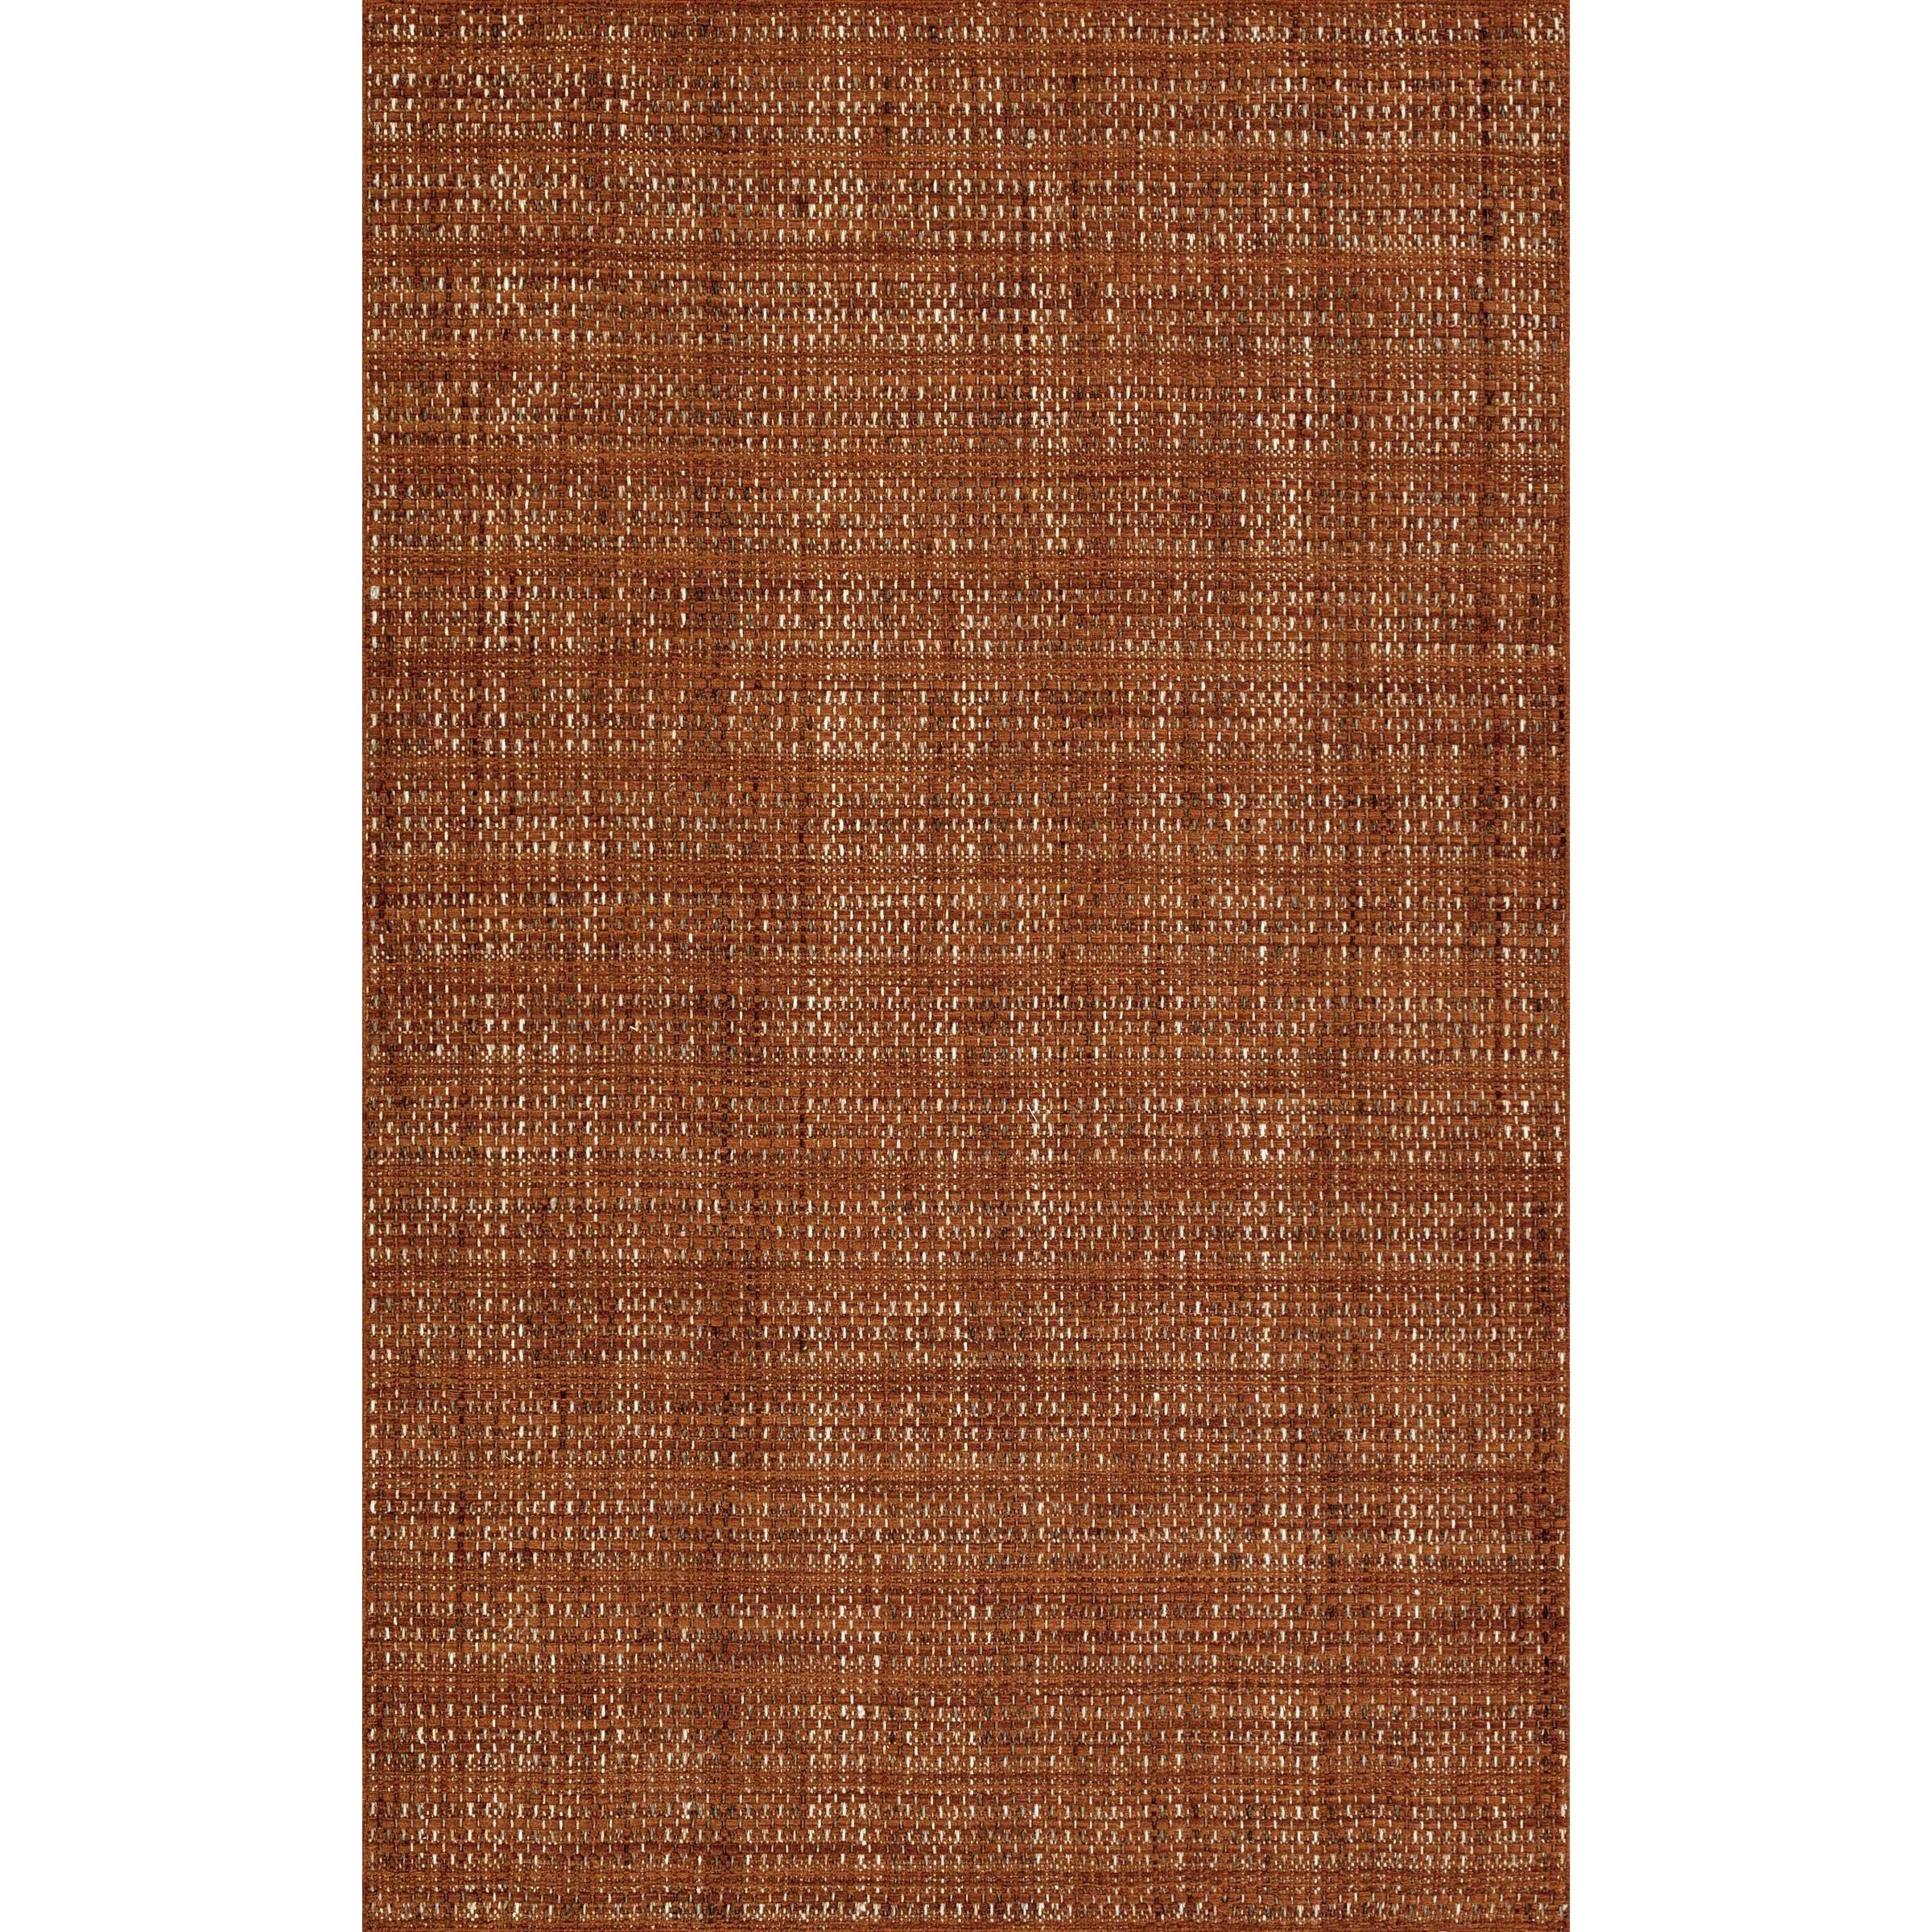 "Nepal Spice 3'6"" x 5'6"" Rug by Dalyn at Sadler's Home Furnishings"